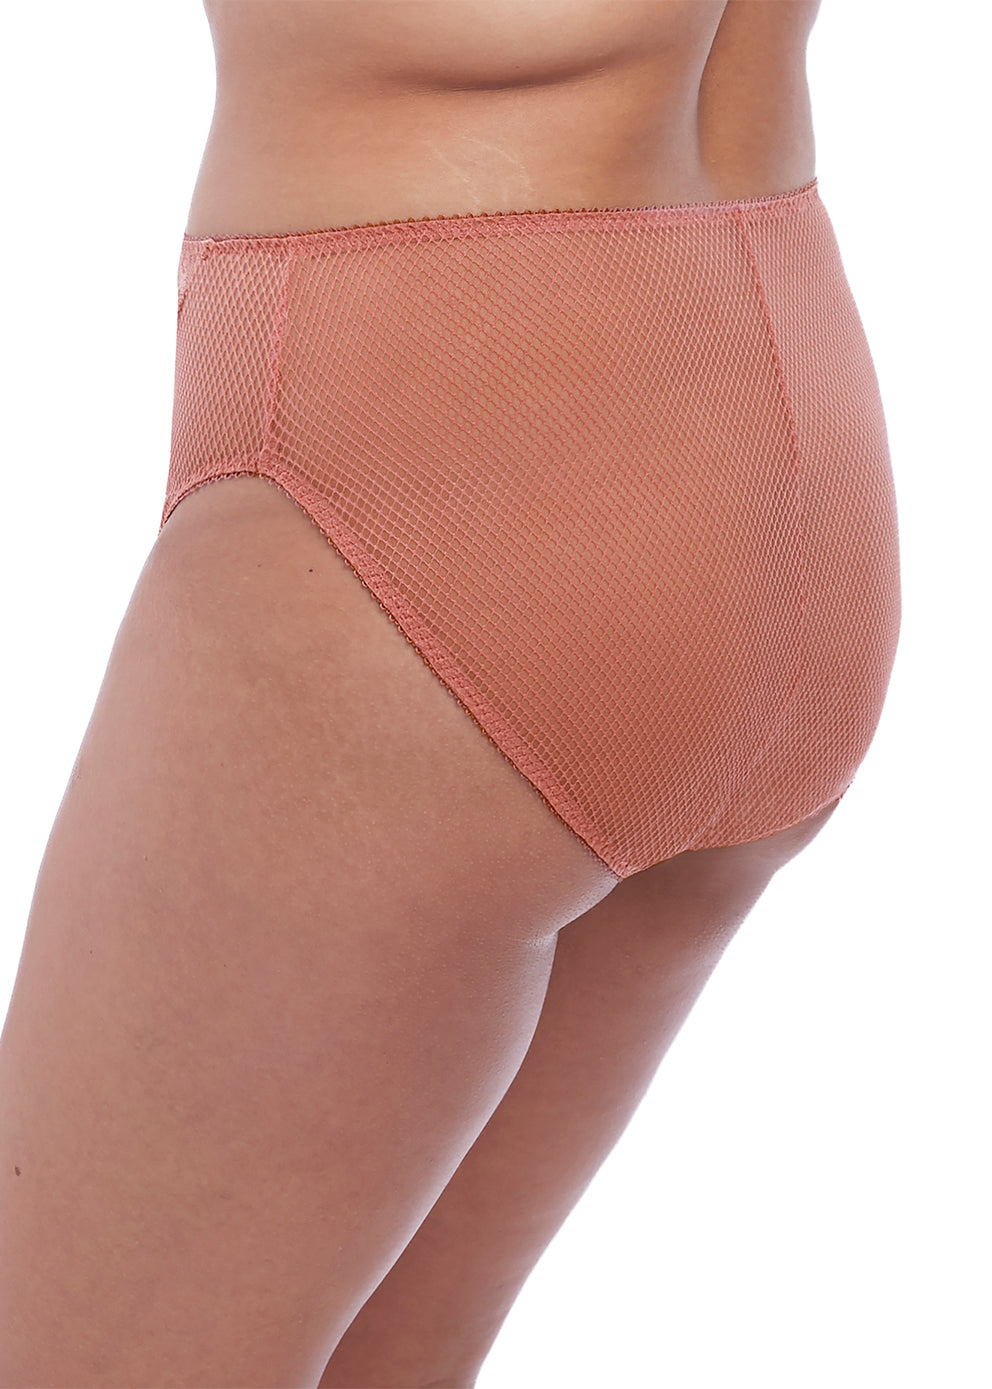 EL4386ROD Charley High Leg Brief |ROSE GOLD|